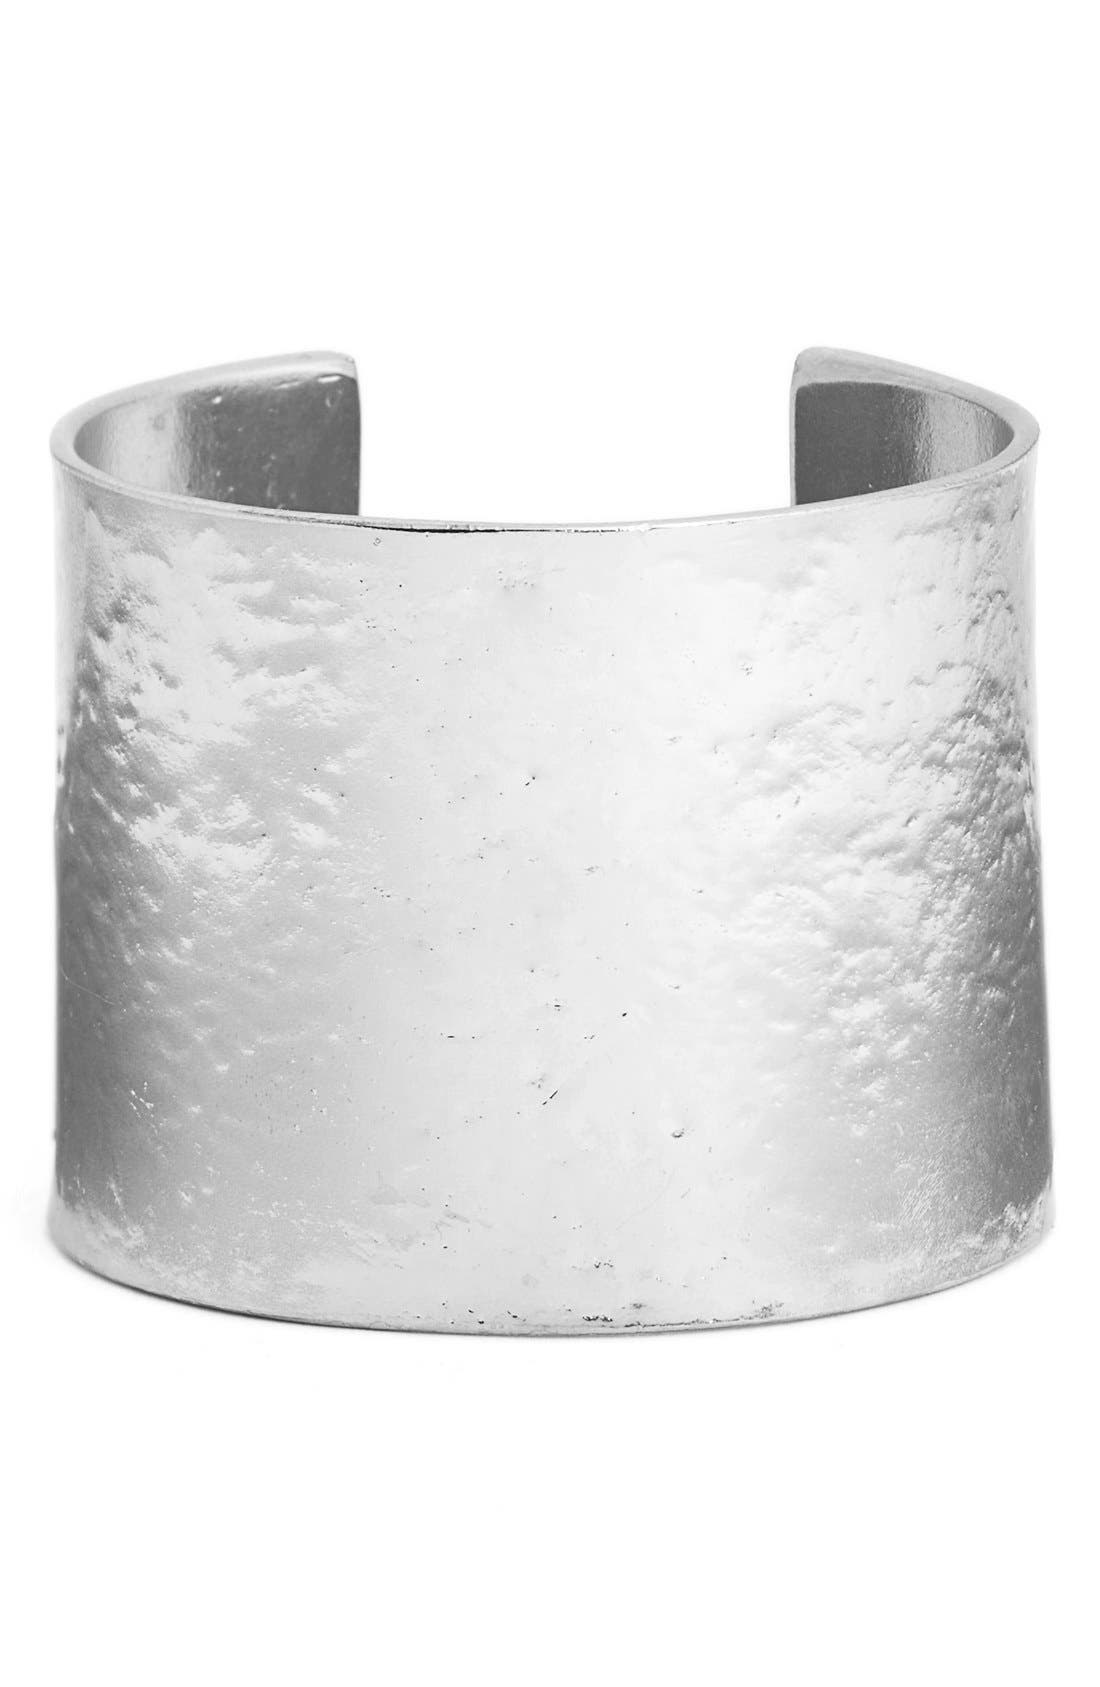 Alternate Image 1 Selected - Karine Sultan Hammered Cuff